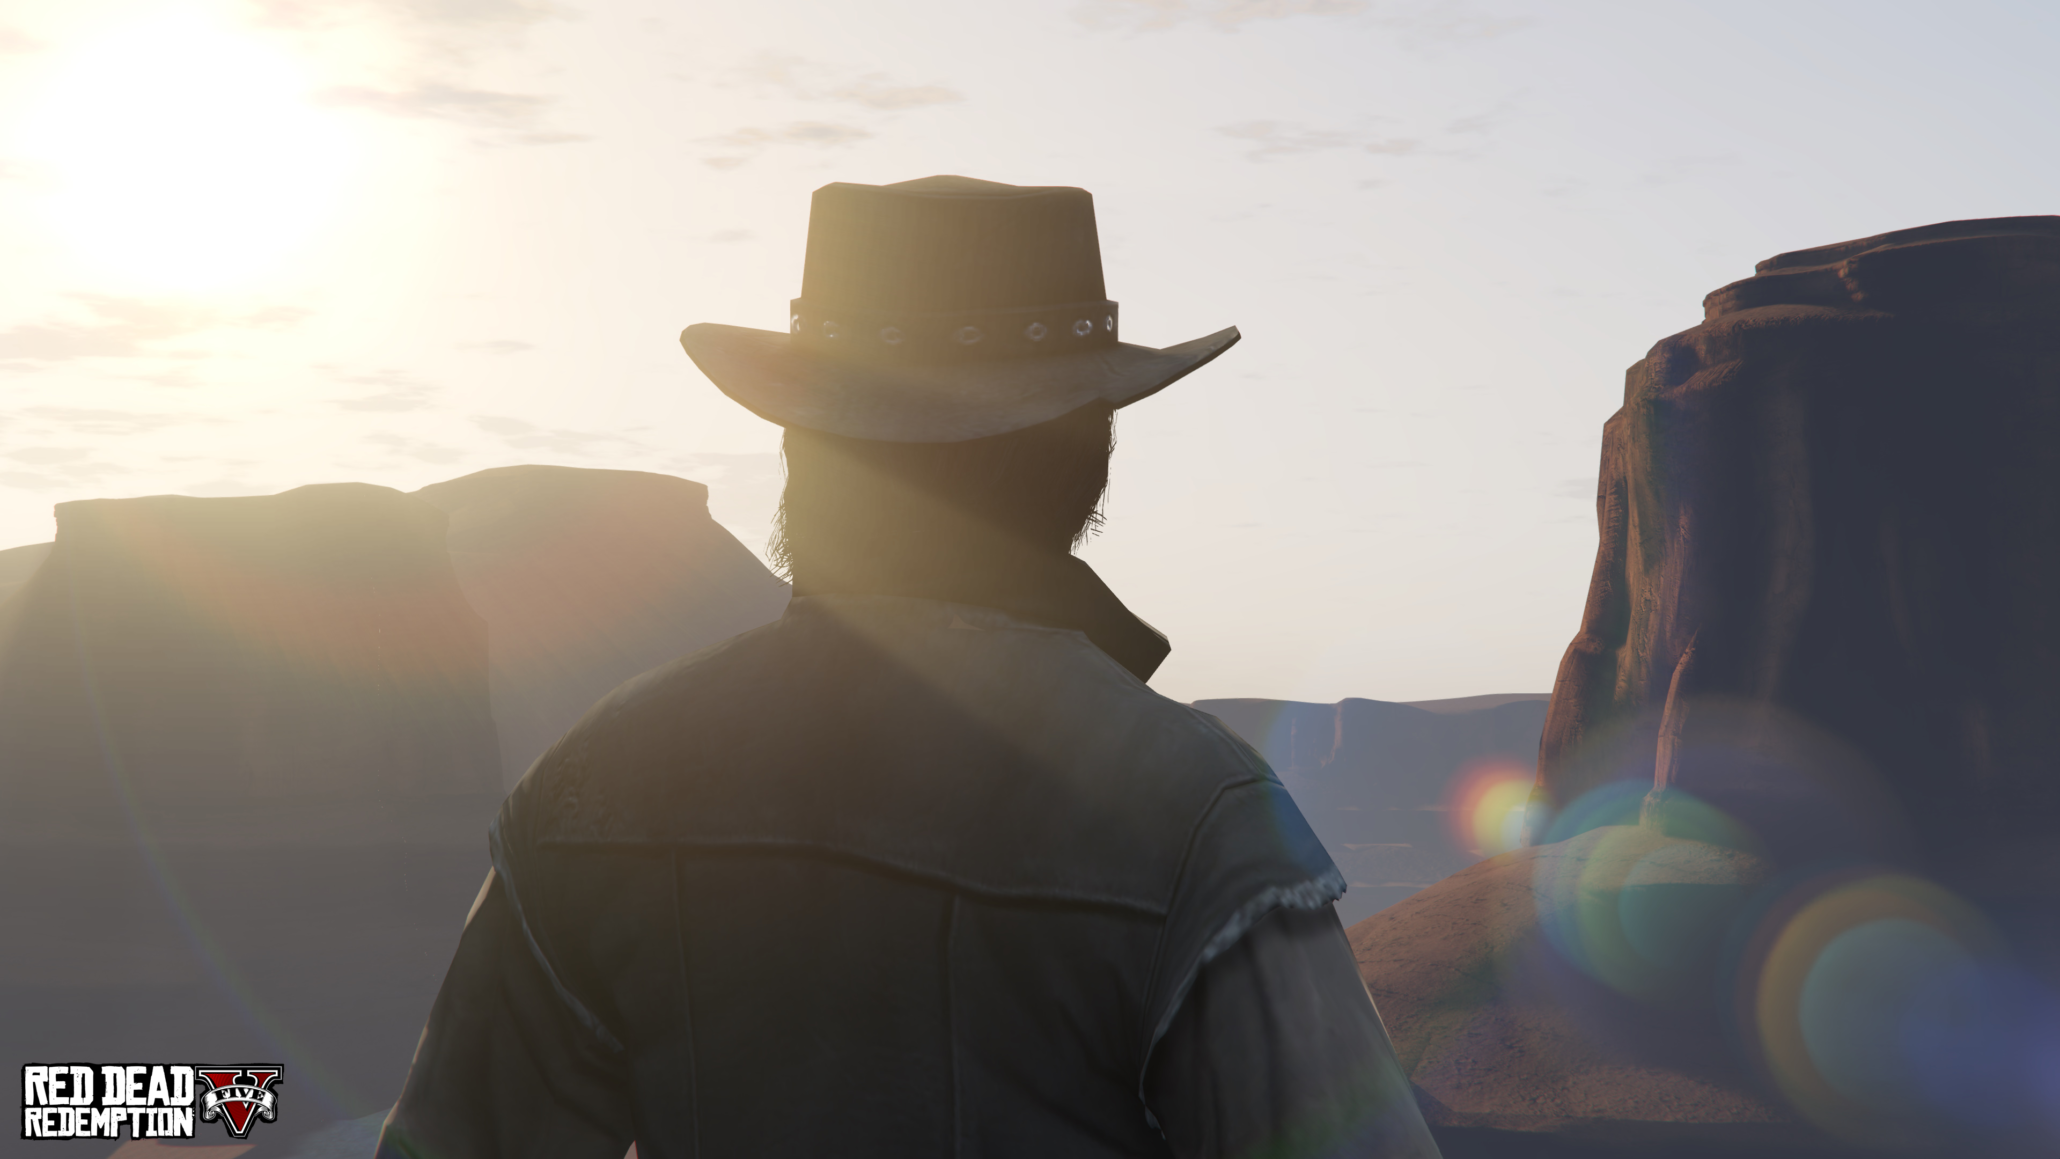 Rockstar rains down on red dead redemptions gtav pc mod crushing weve seen many great pc mods for grand theft auto v but one in particular captured the headlines lately the folks at white team were about to finalize publicscrutiny Images